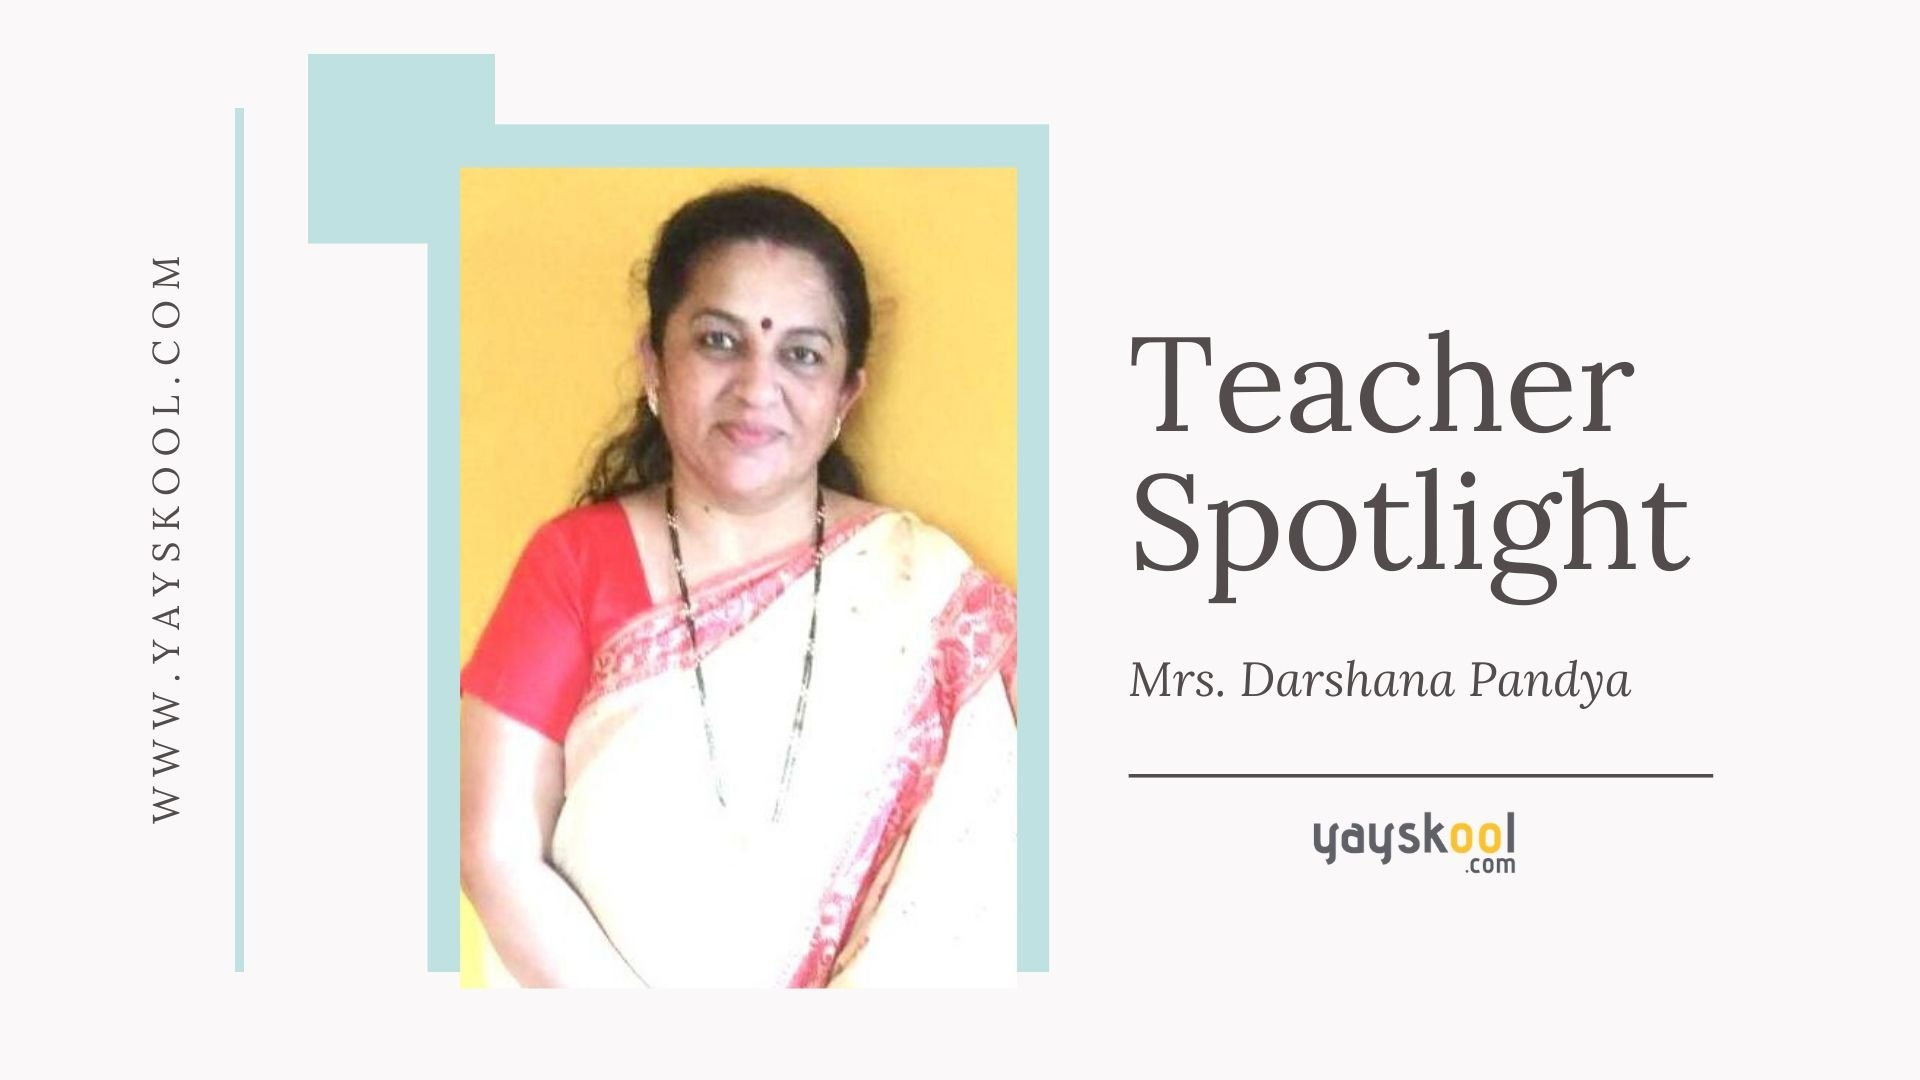 Teacher Spotlight - Mrs. Darshana Pandya